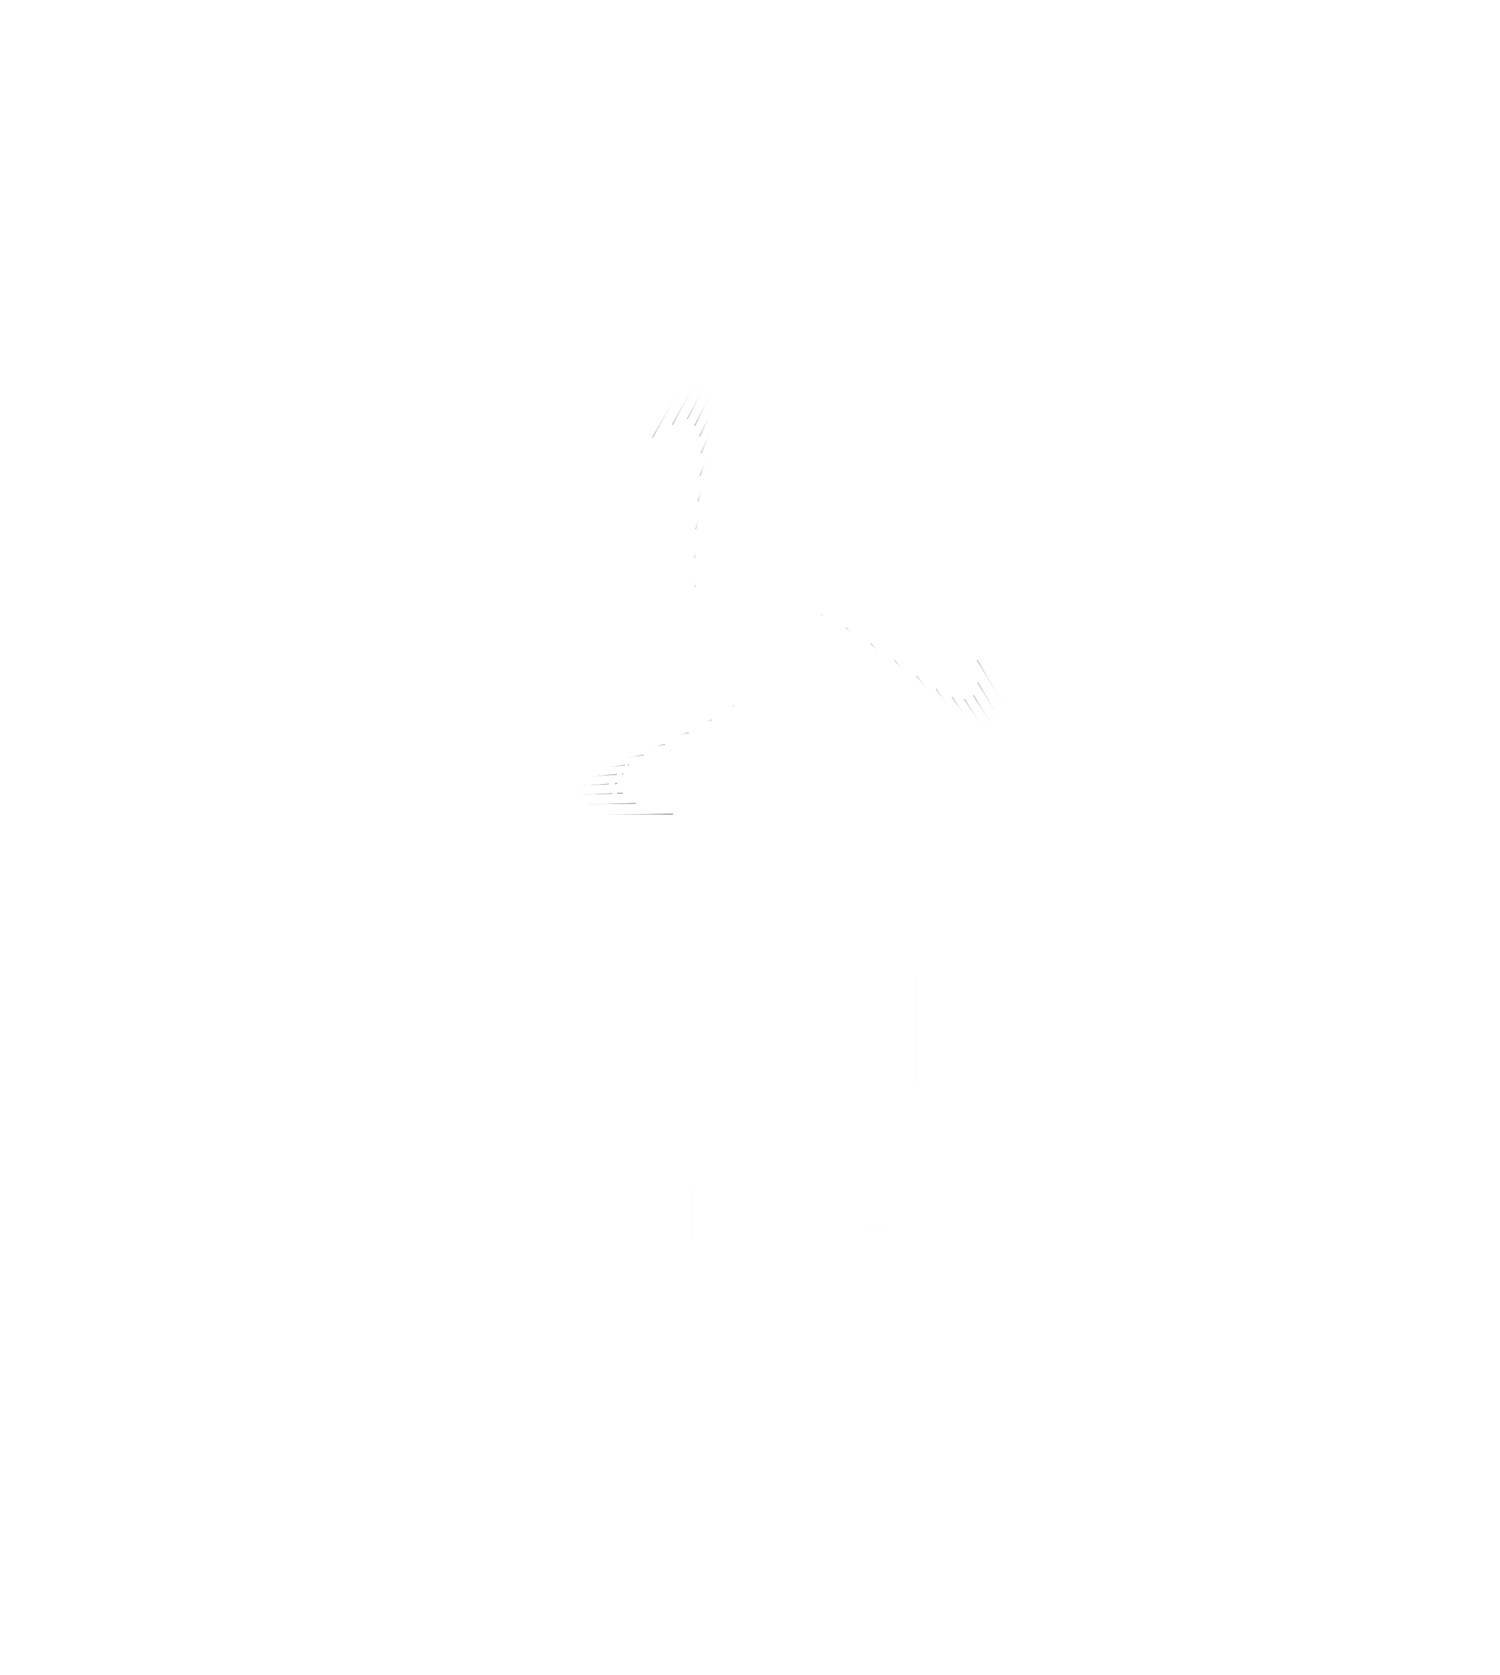 Mythic VR | VR for Real Estate, Architecture & Design